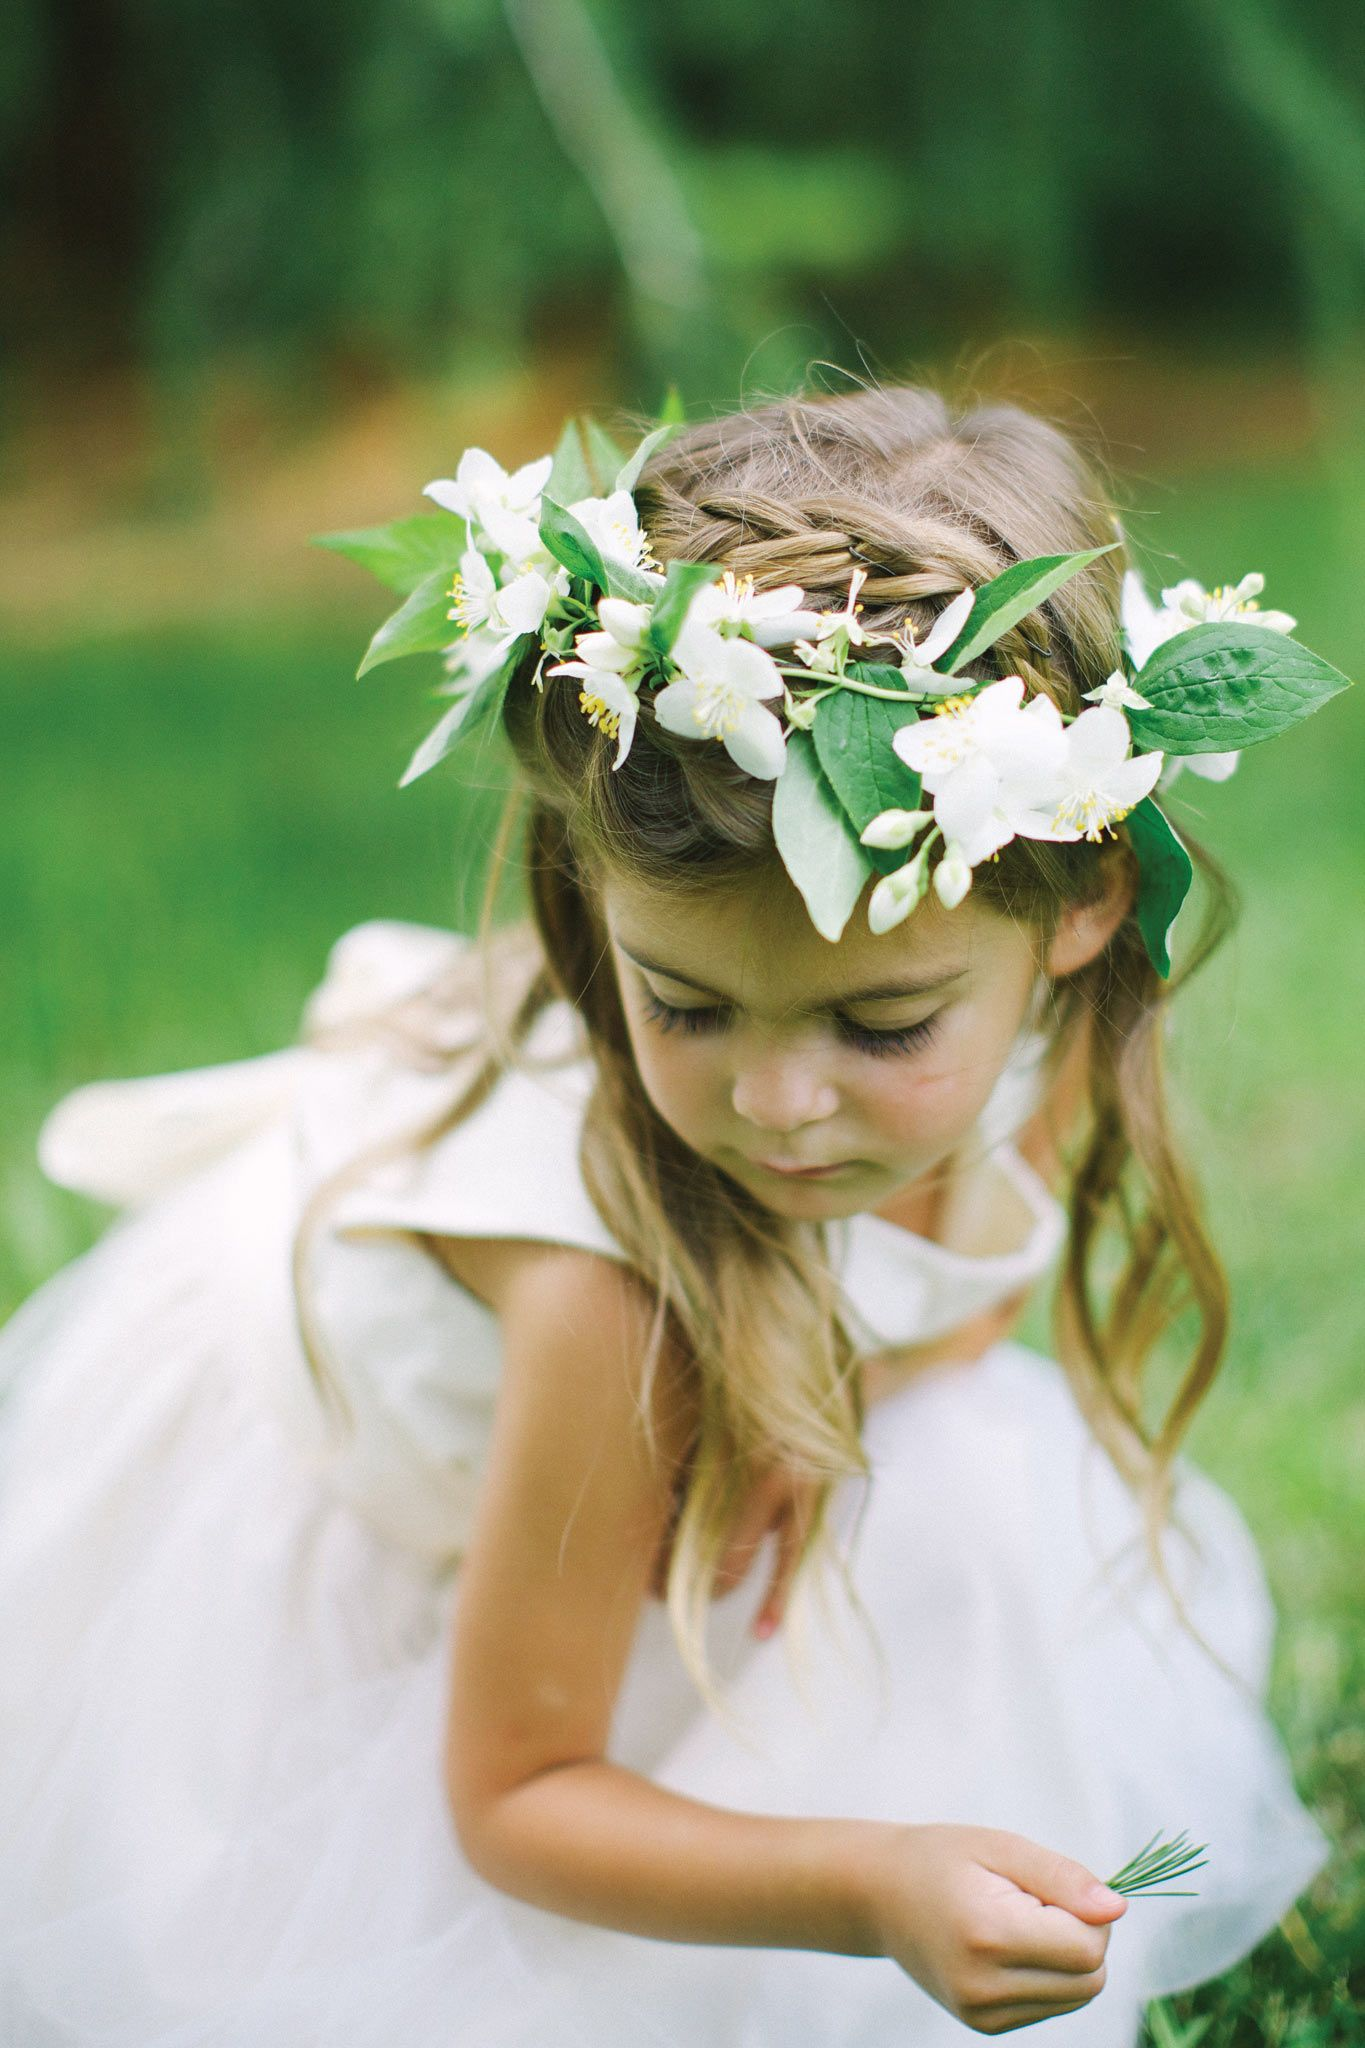 Wedding Theme A Farm Fresh Fte Pinterest Flower Girl Crown